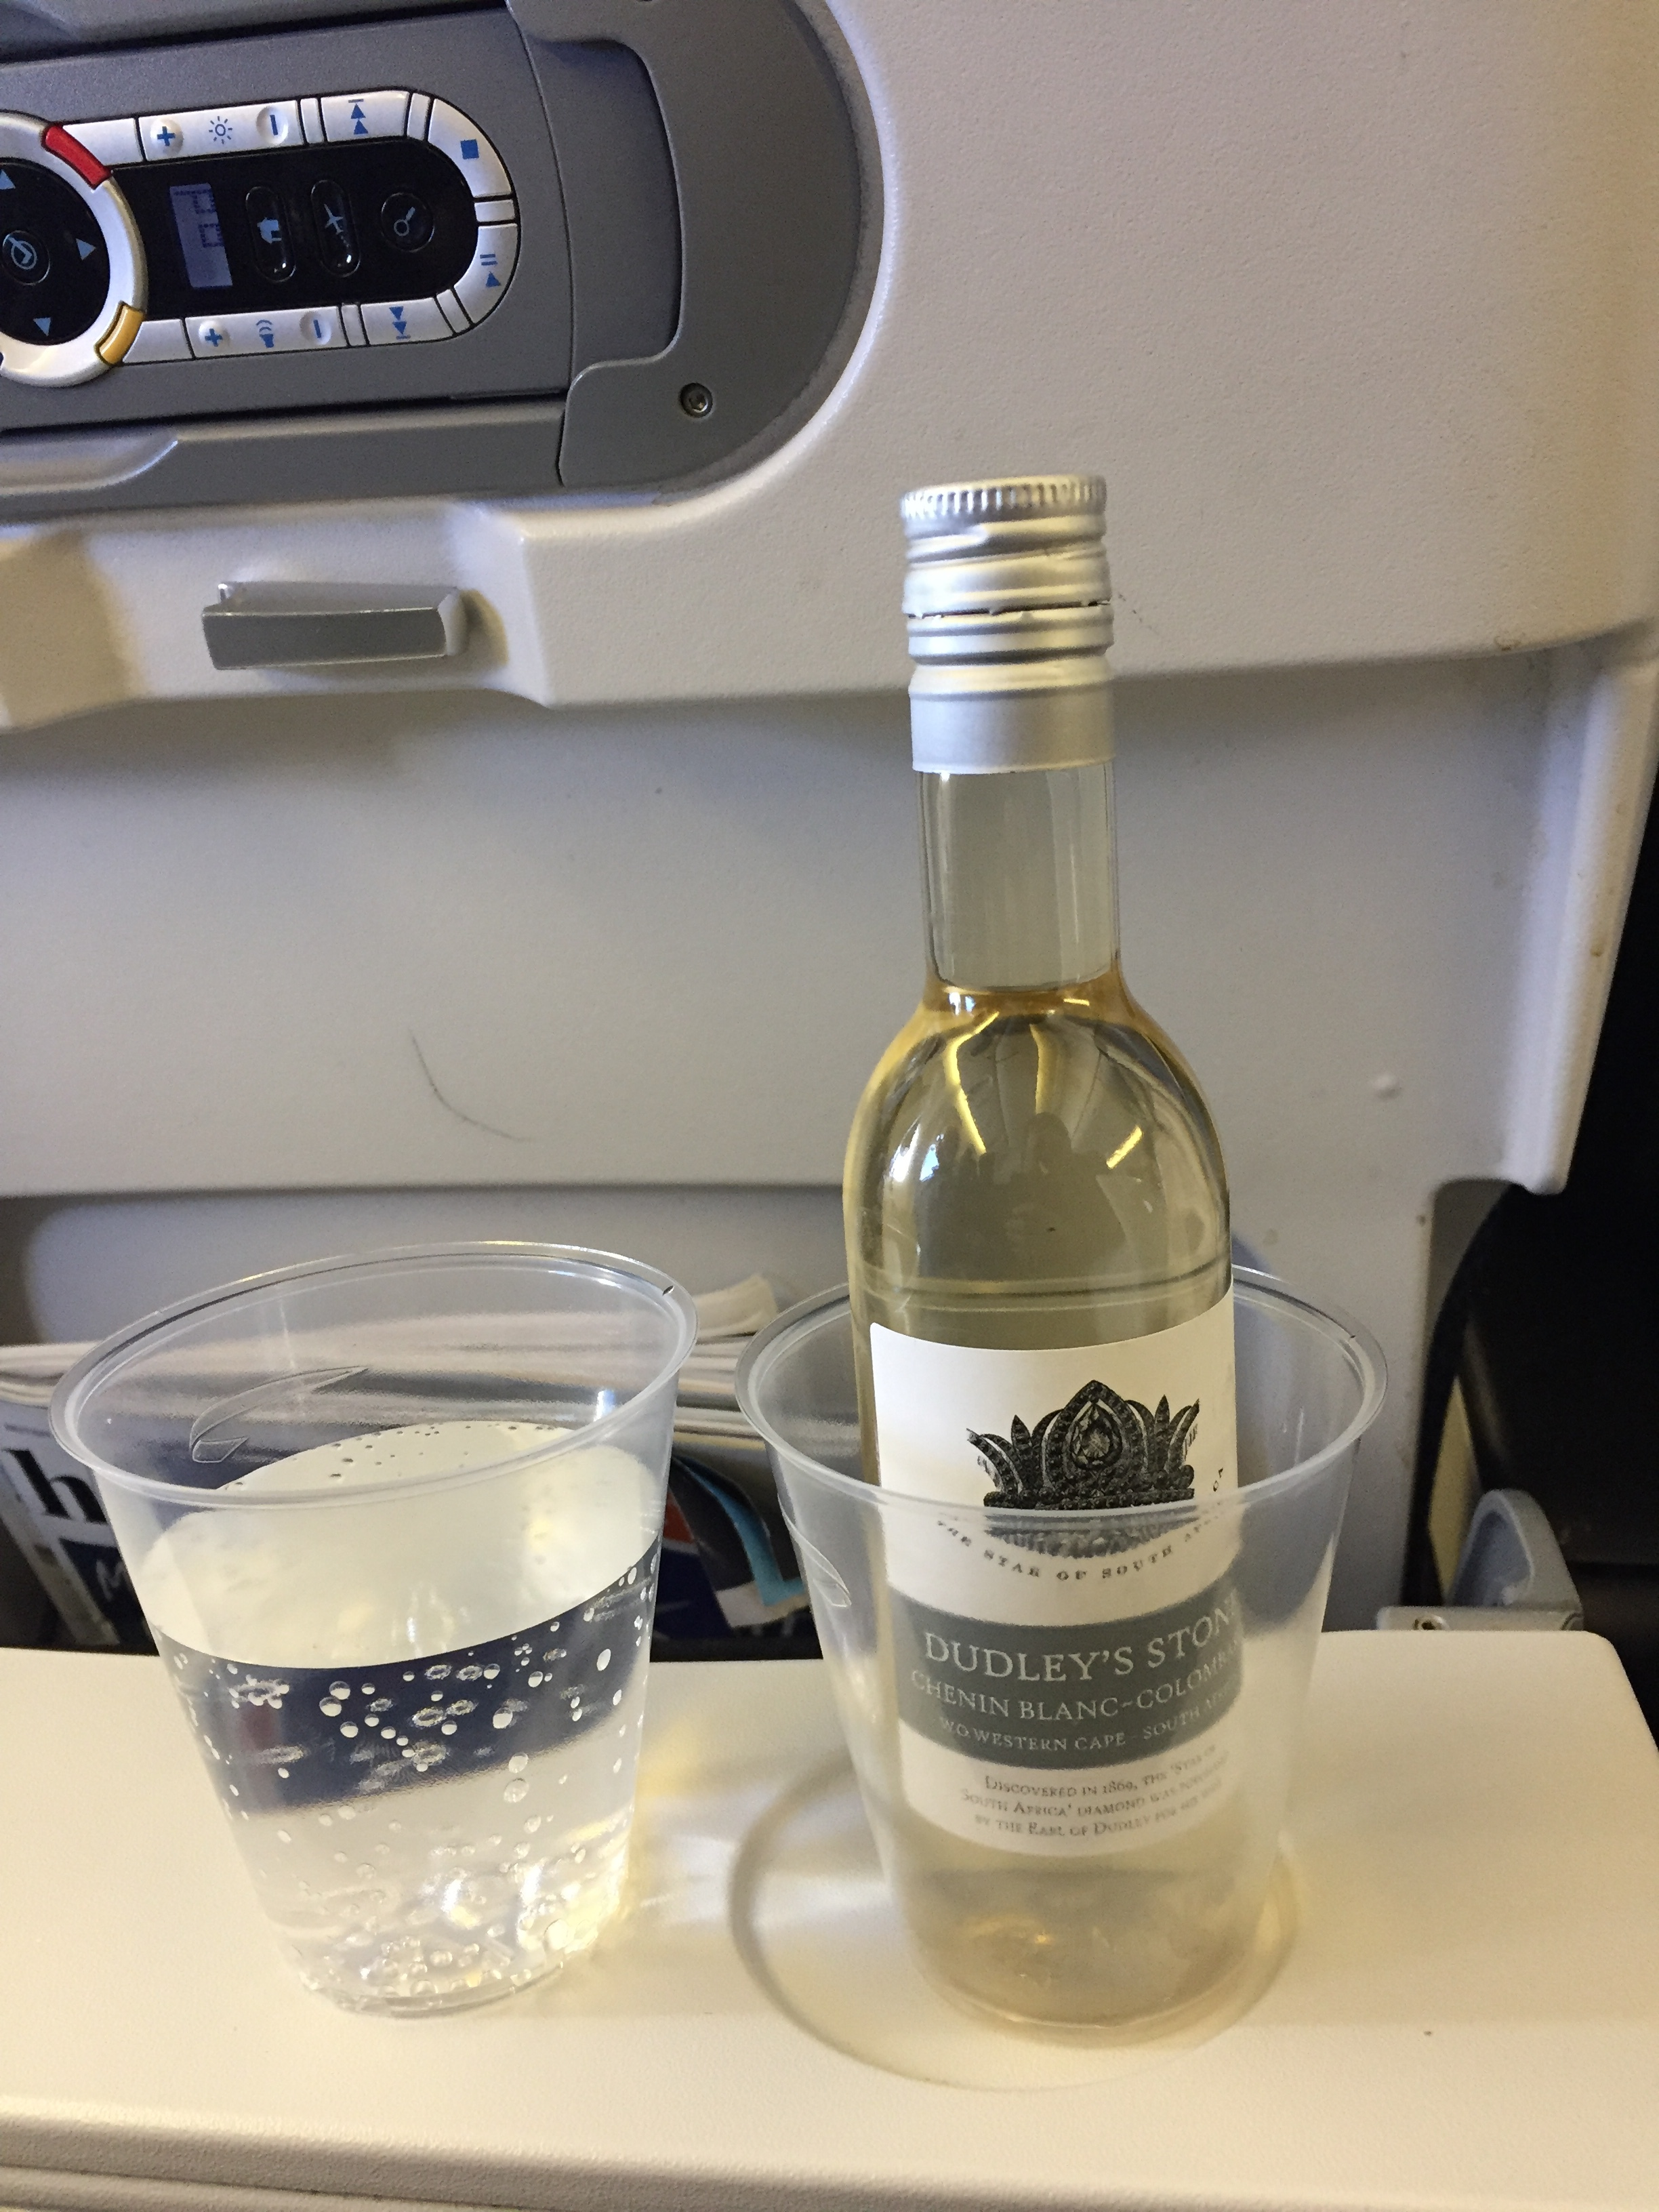 Luckily this flight had managed to preserve the complimentary food and drink service. However, although free,this was perhaps the weakest point of the whole experience, nothing to write home about